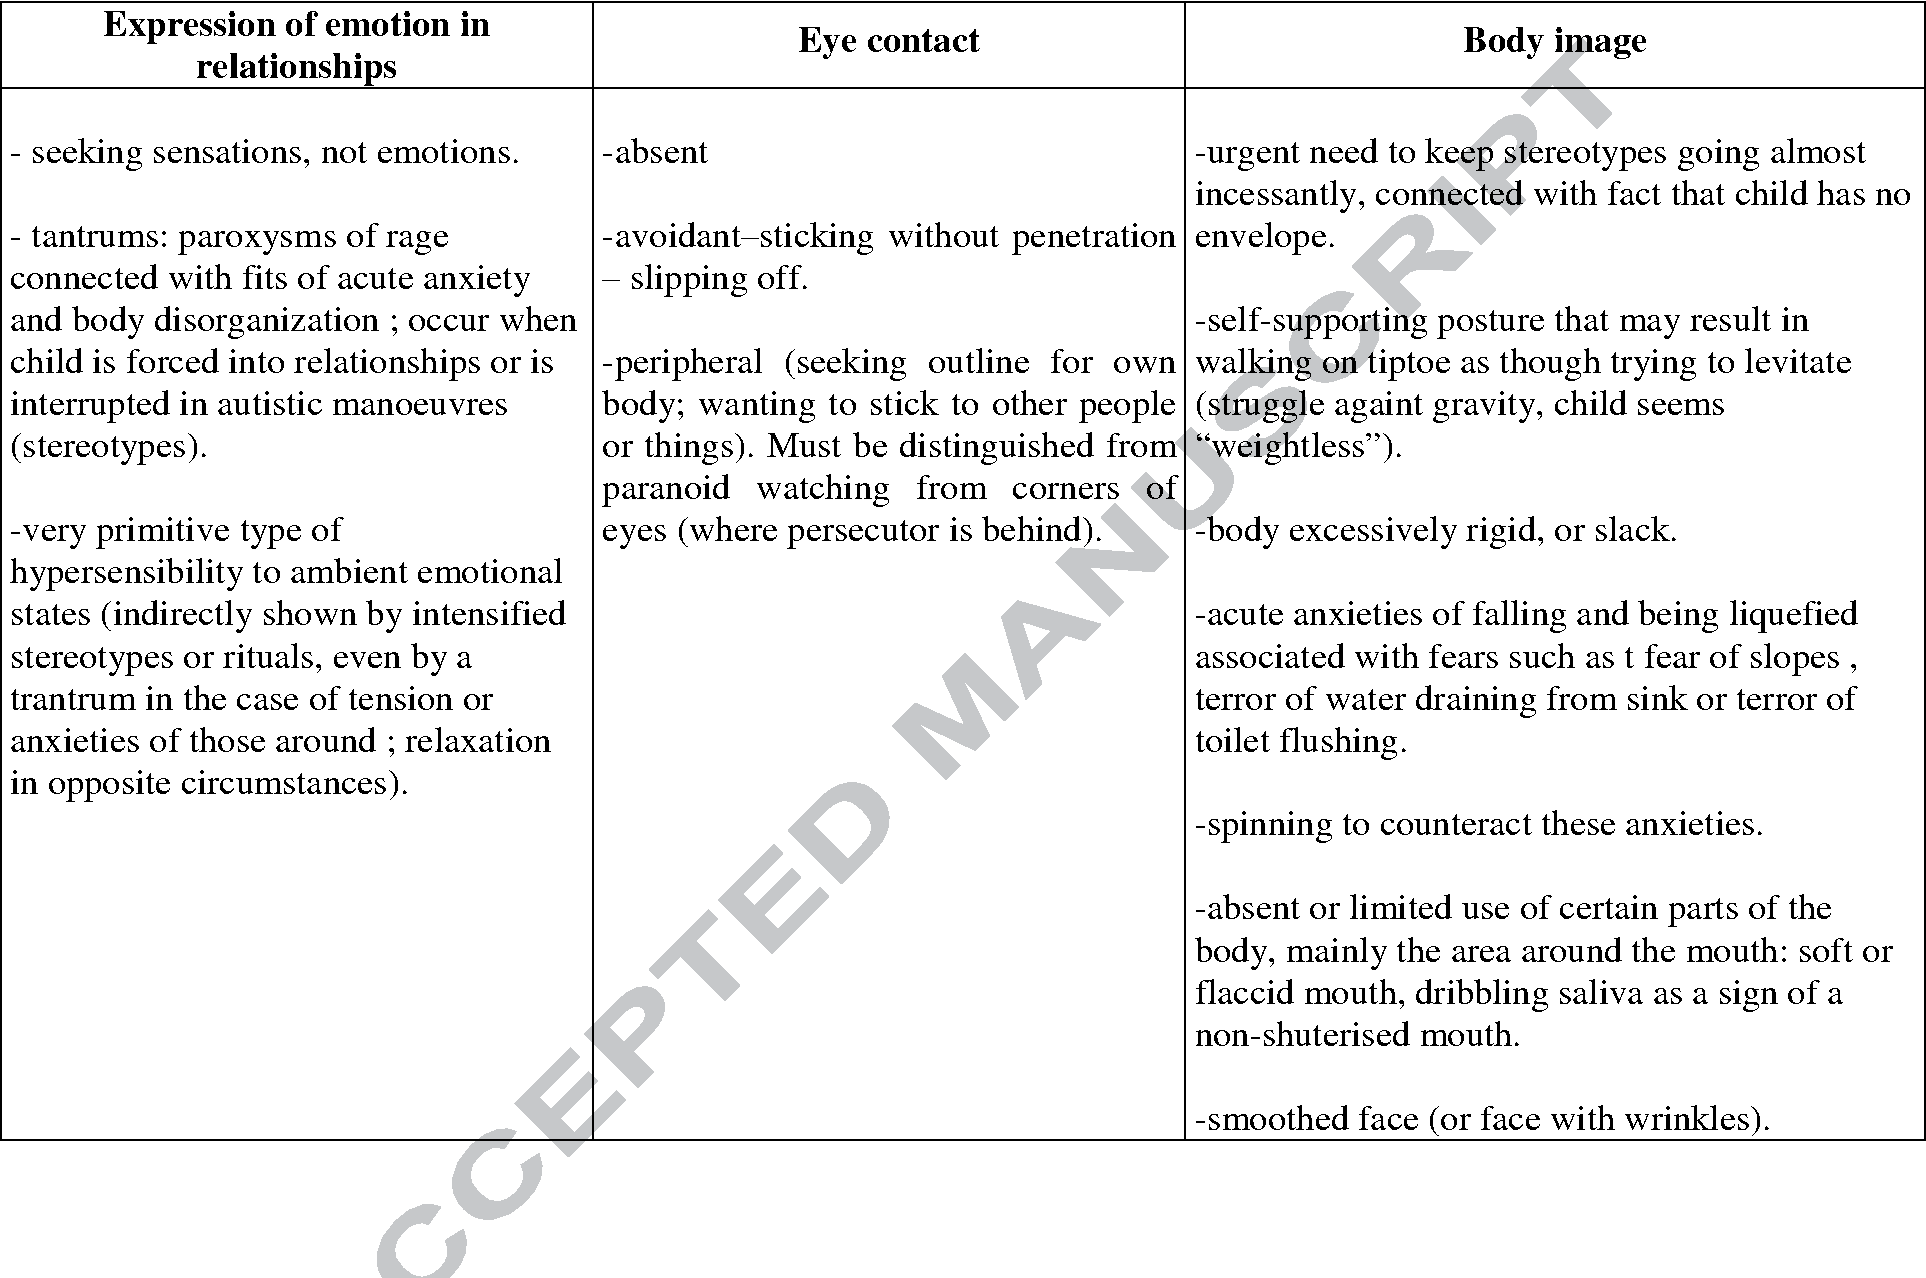 Table 2 from The Autism Psychodynamic Evaluation of Changes